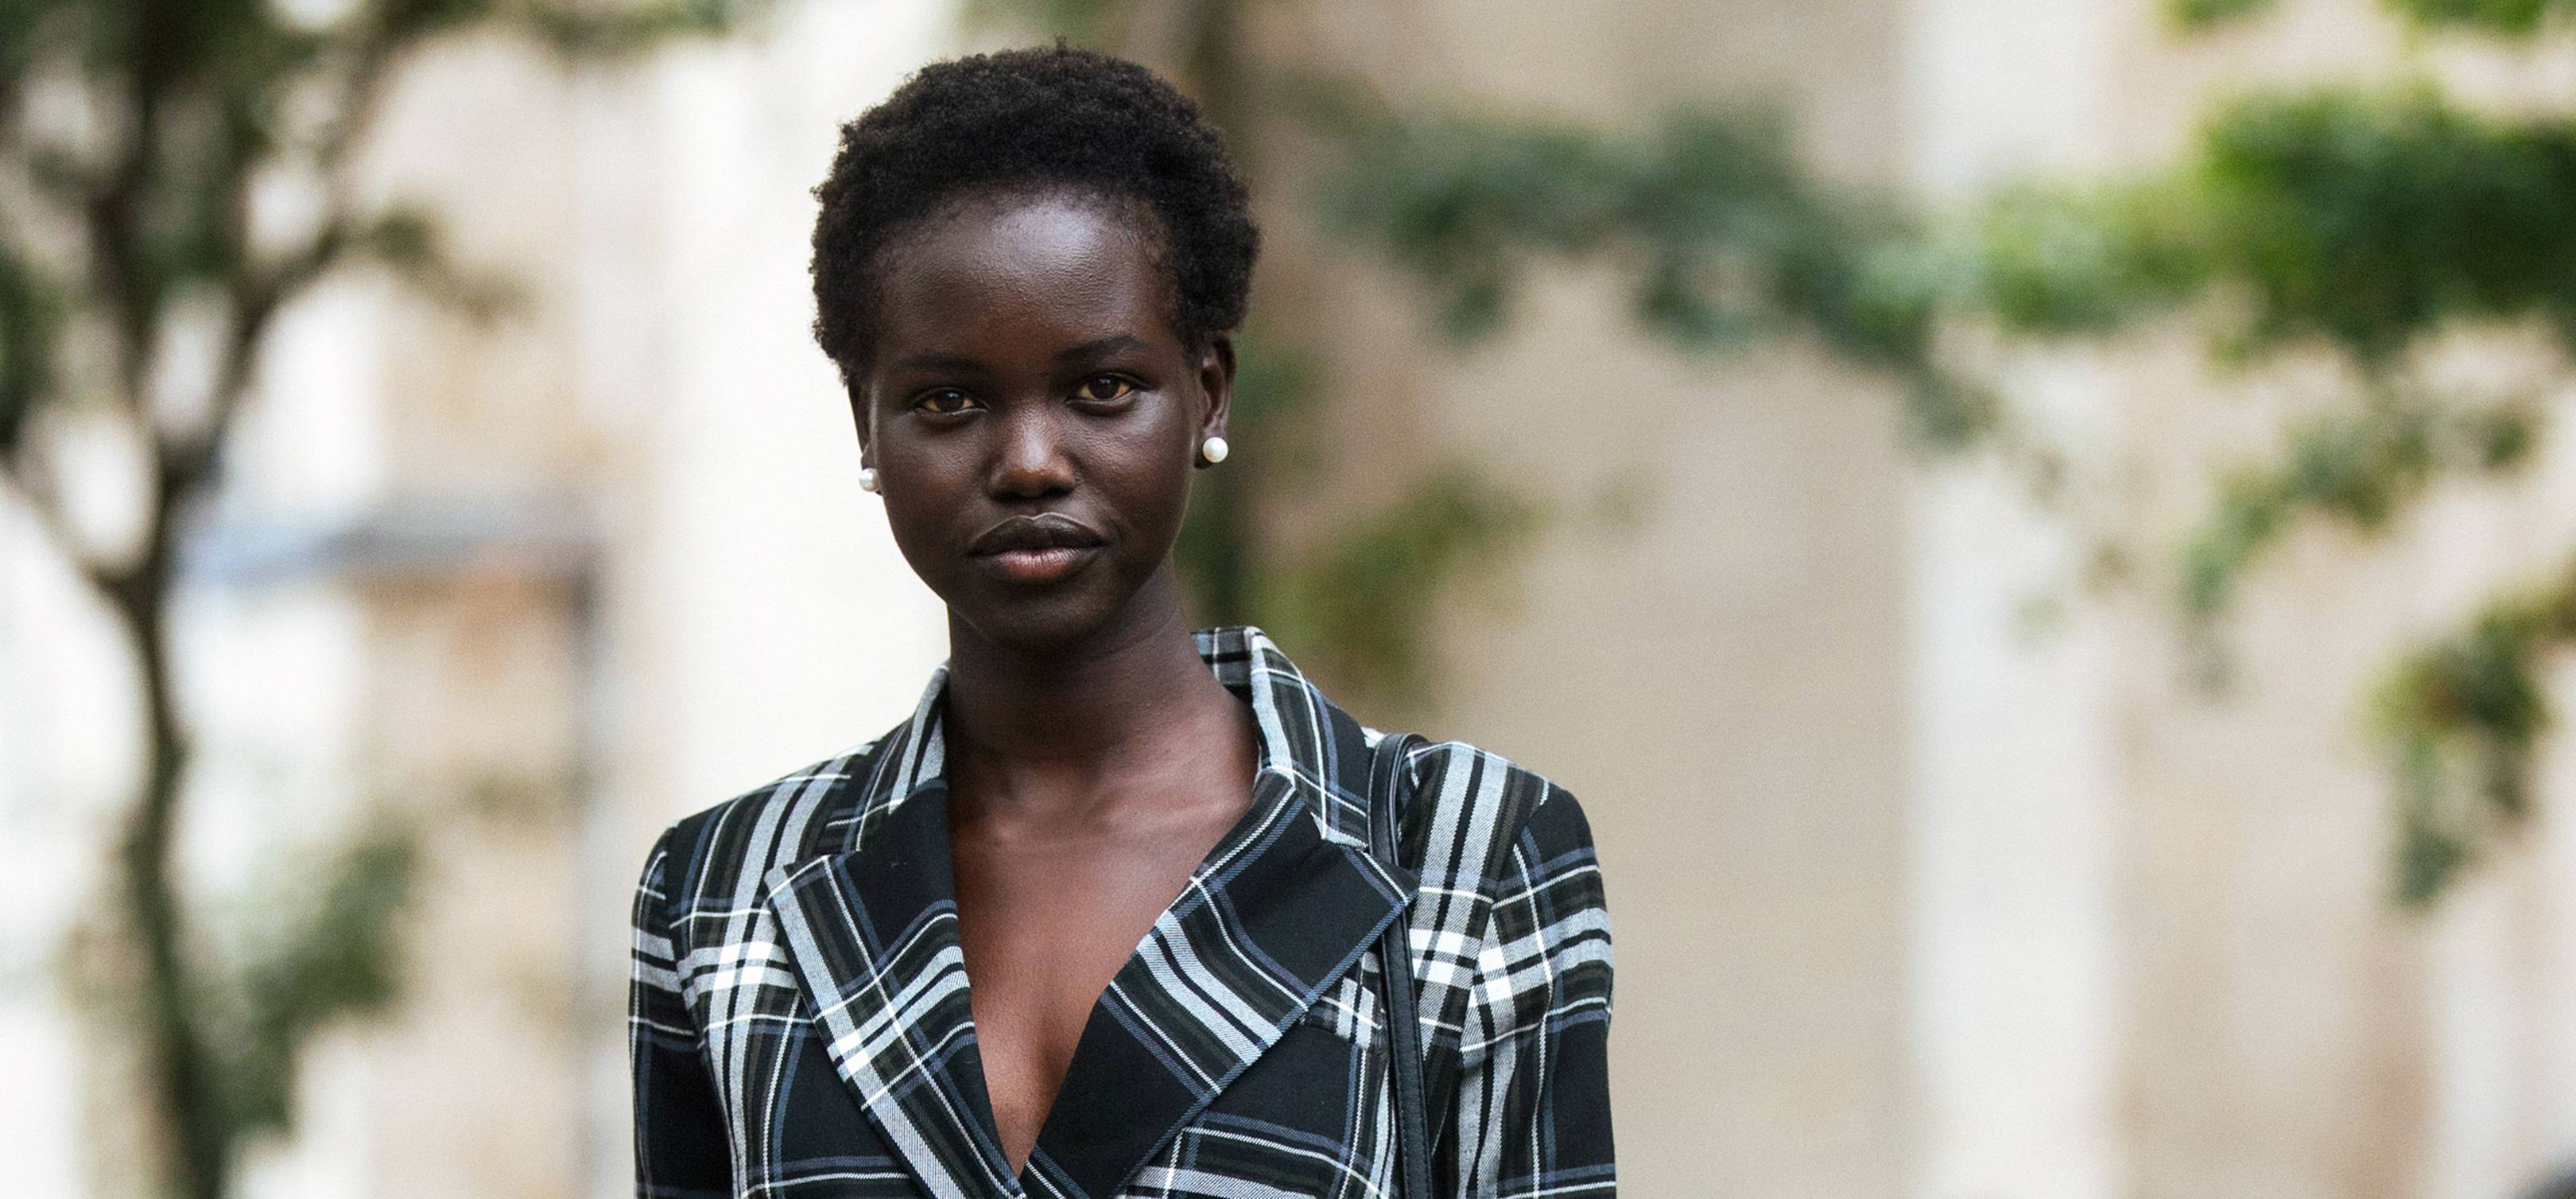 Who Is Adut Akech Meet The18 Year Old Model Of The Year Nominee